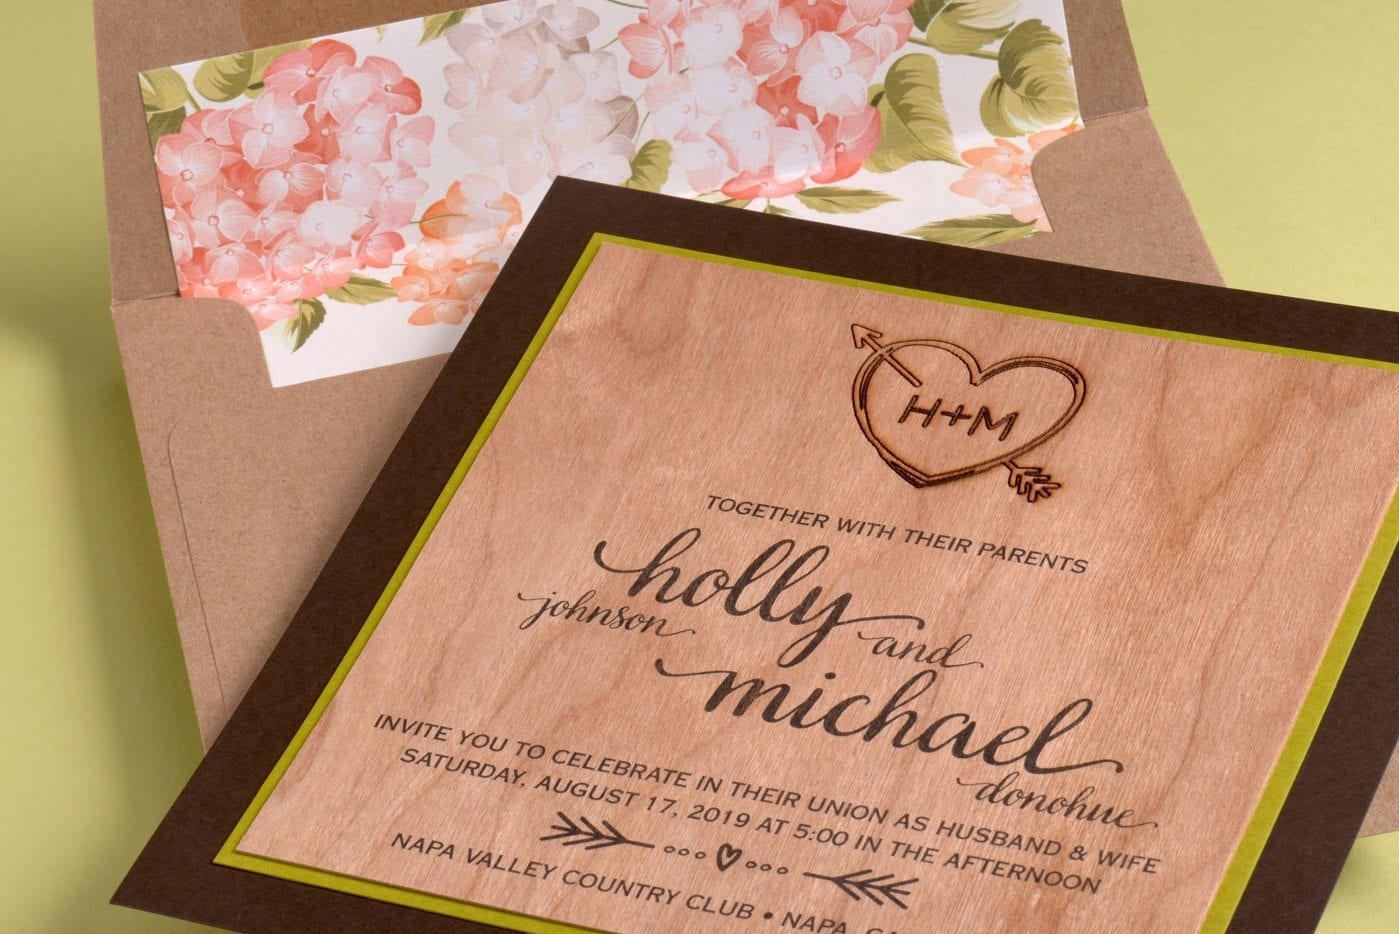 Reno wedding invitations, custom wedding invitations in Reno, Reno invitations, invitations in Reno, Reno wedding stationery